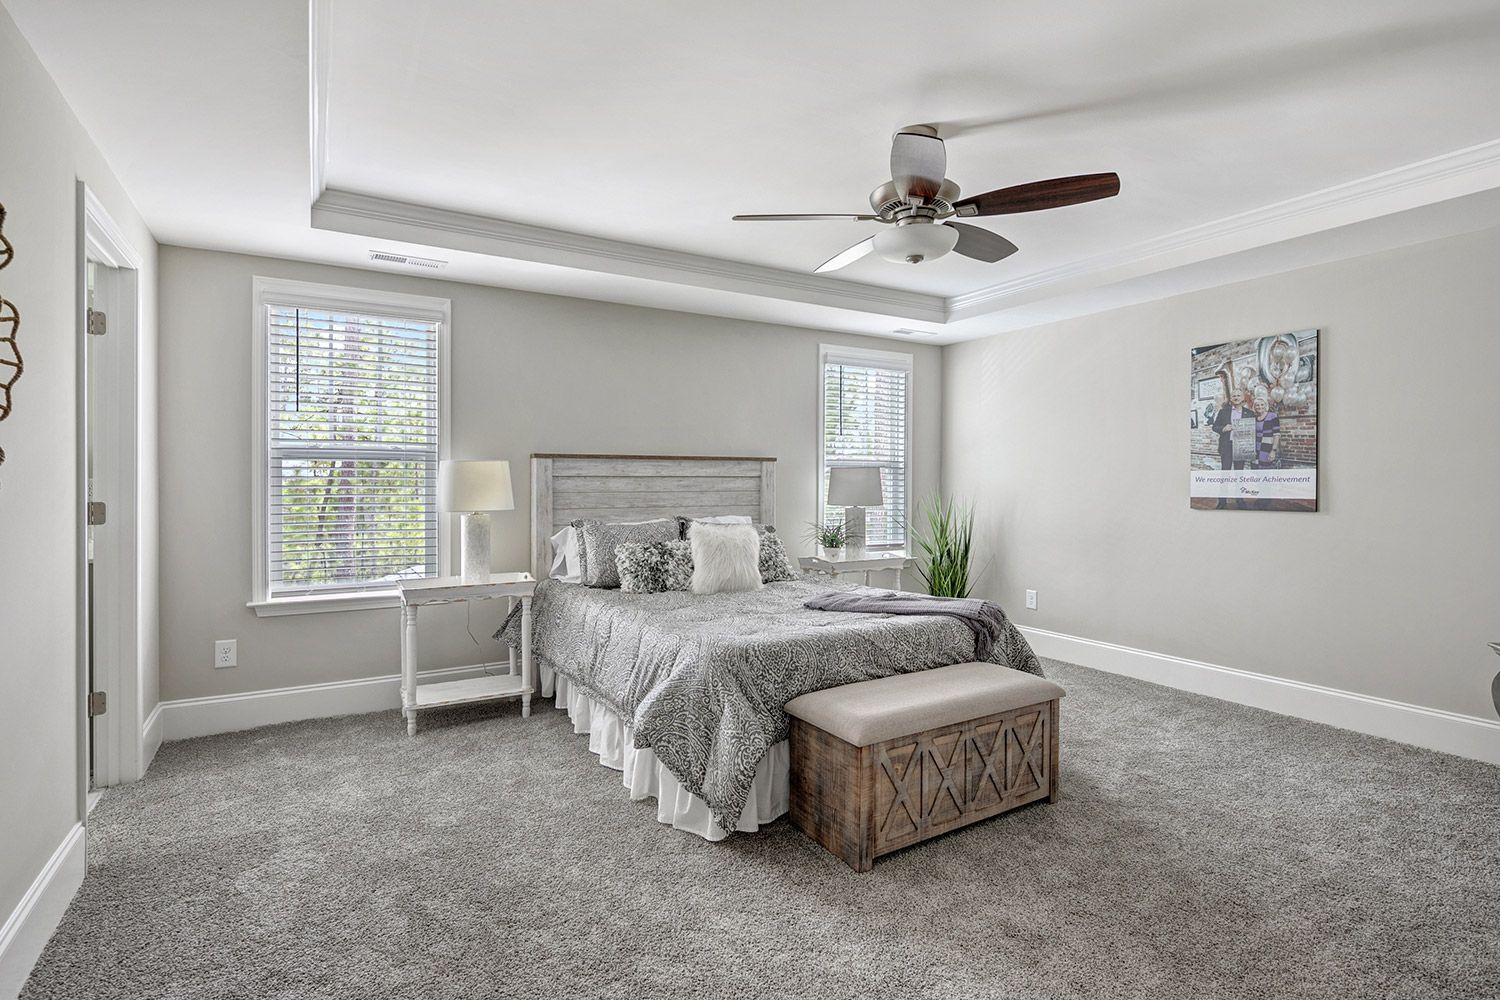 Bedroom featured in the Nelson 2020 Craftsman By McKee Homes in Pinehurst-Southern Pines, NC